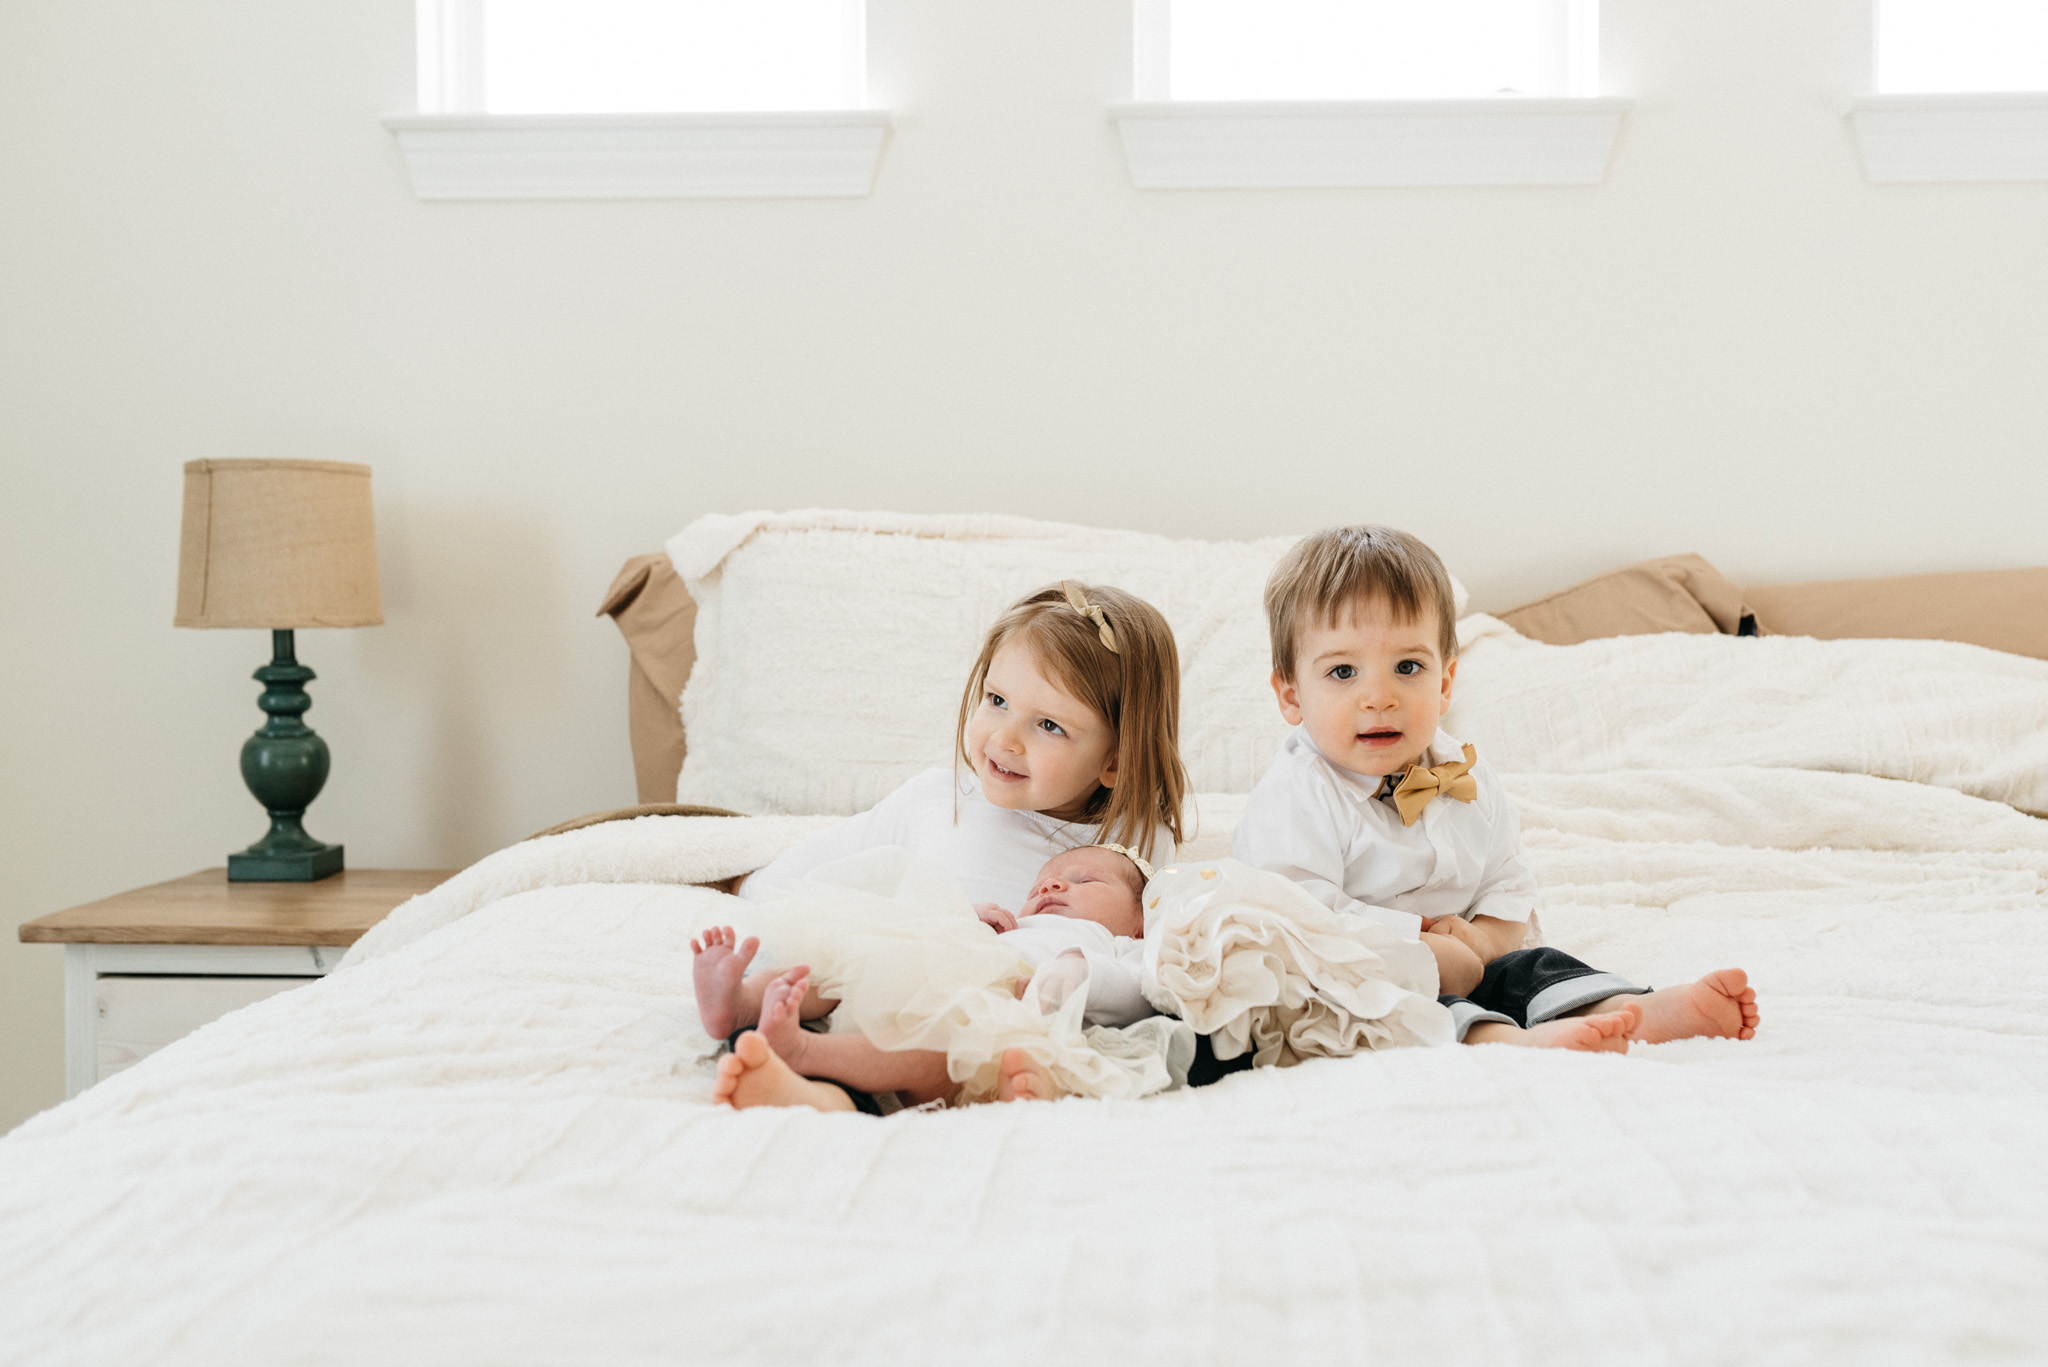 siblings-and-new-baby-sister-Columbus-Ohio-Photographer-Erika-Venci-Photography